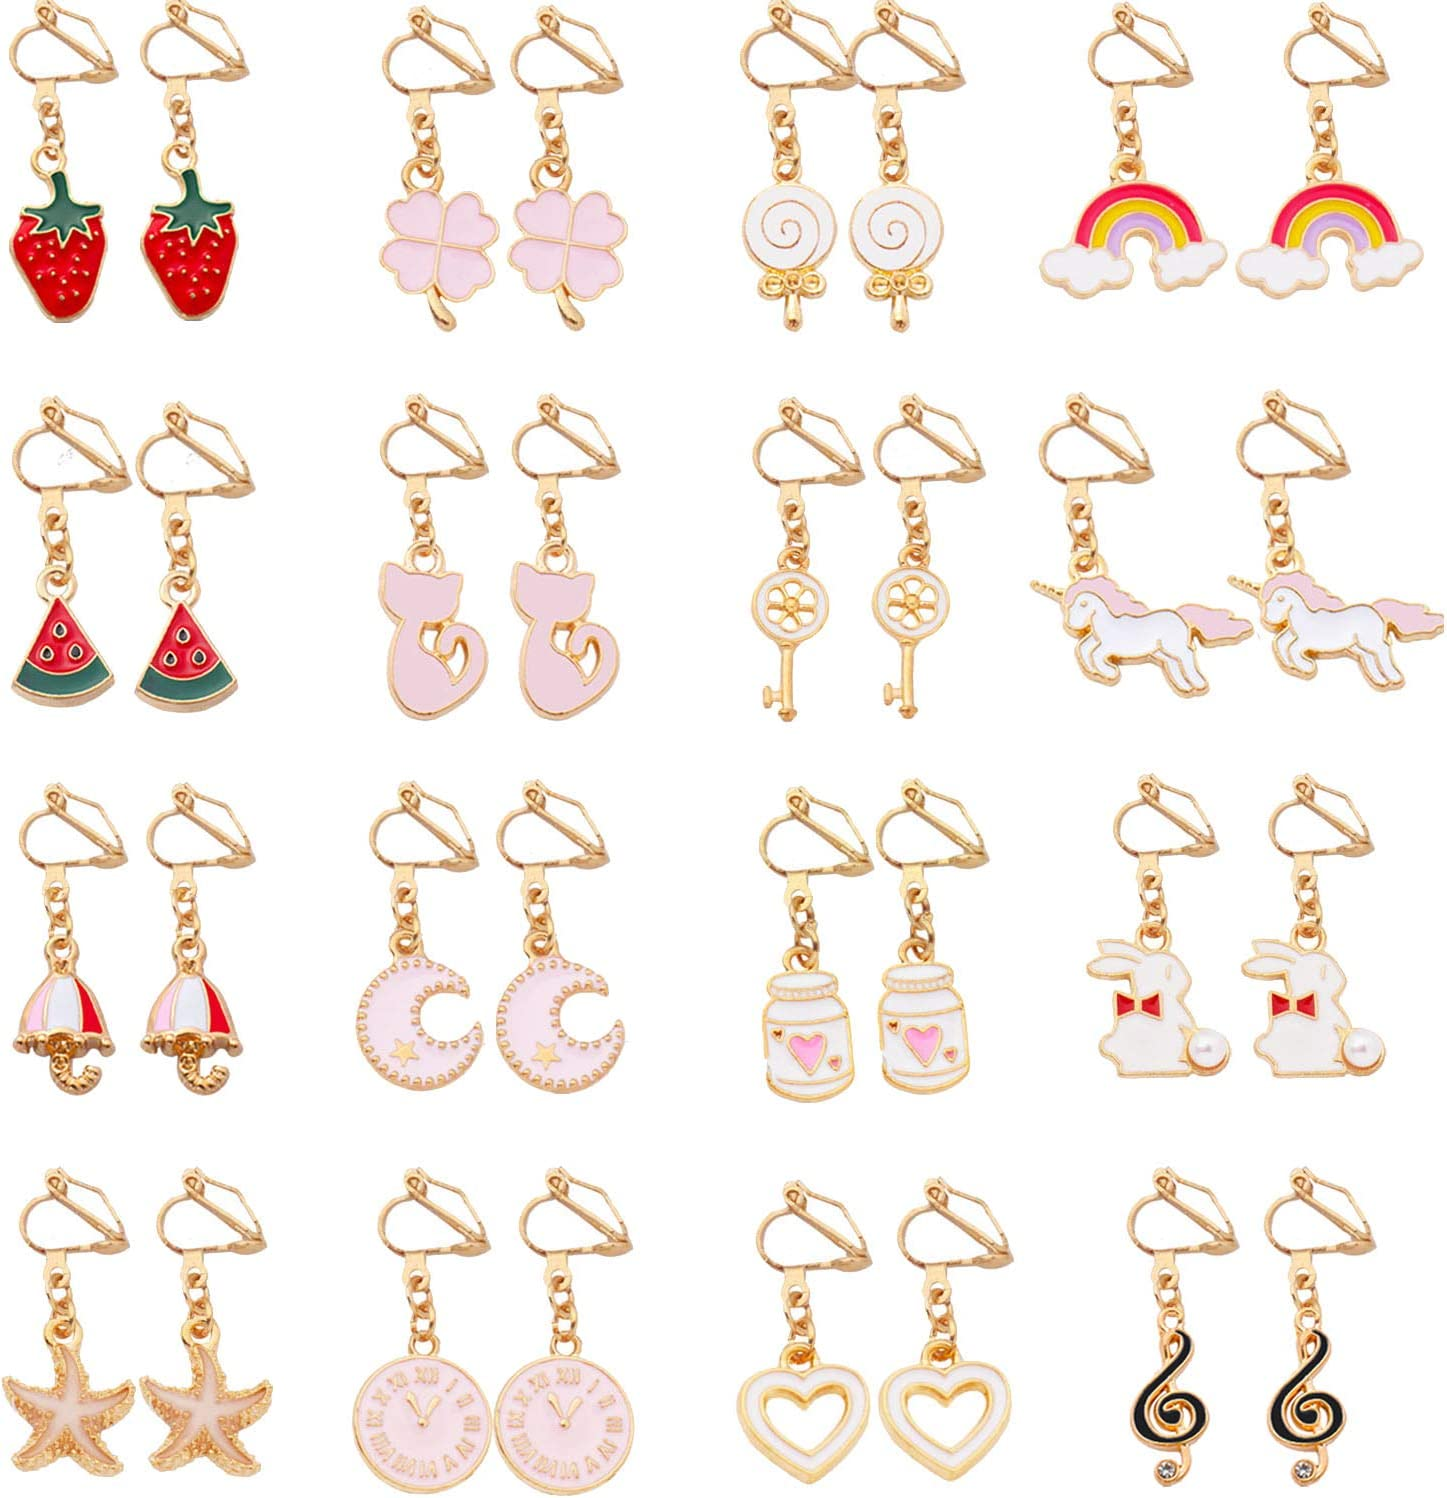 SOTOGO 16 Pairs Clip On Earrings Unicorn Rainbow Sweet Earrings for Little Girls and Women